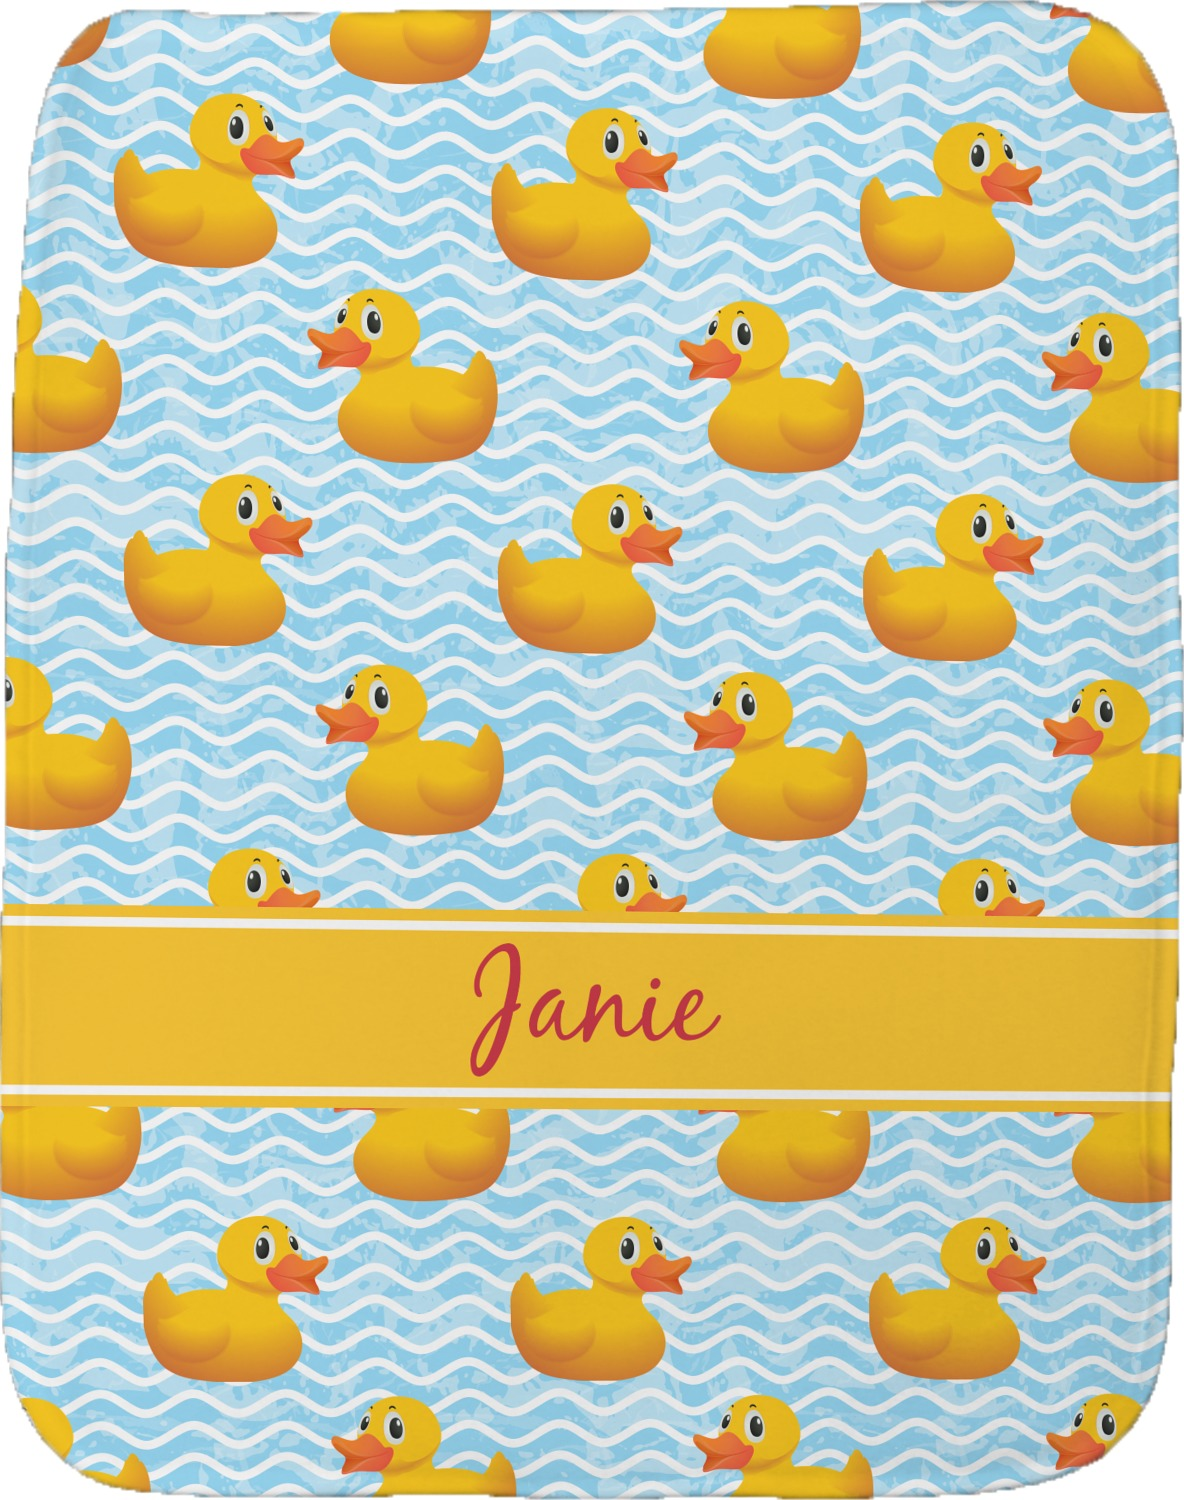 Rubber Duckie Burp Cloth Personalized Youcustomizeit